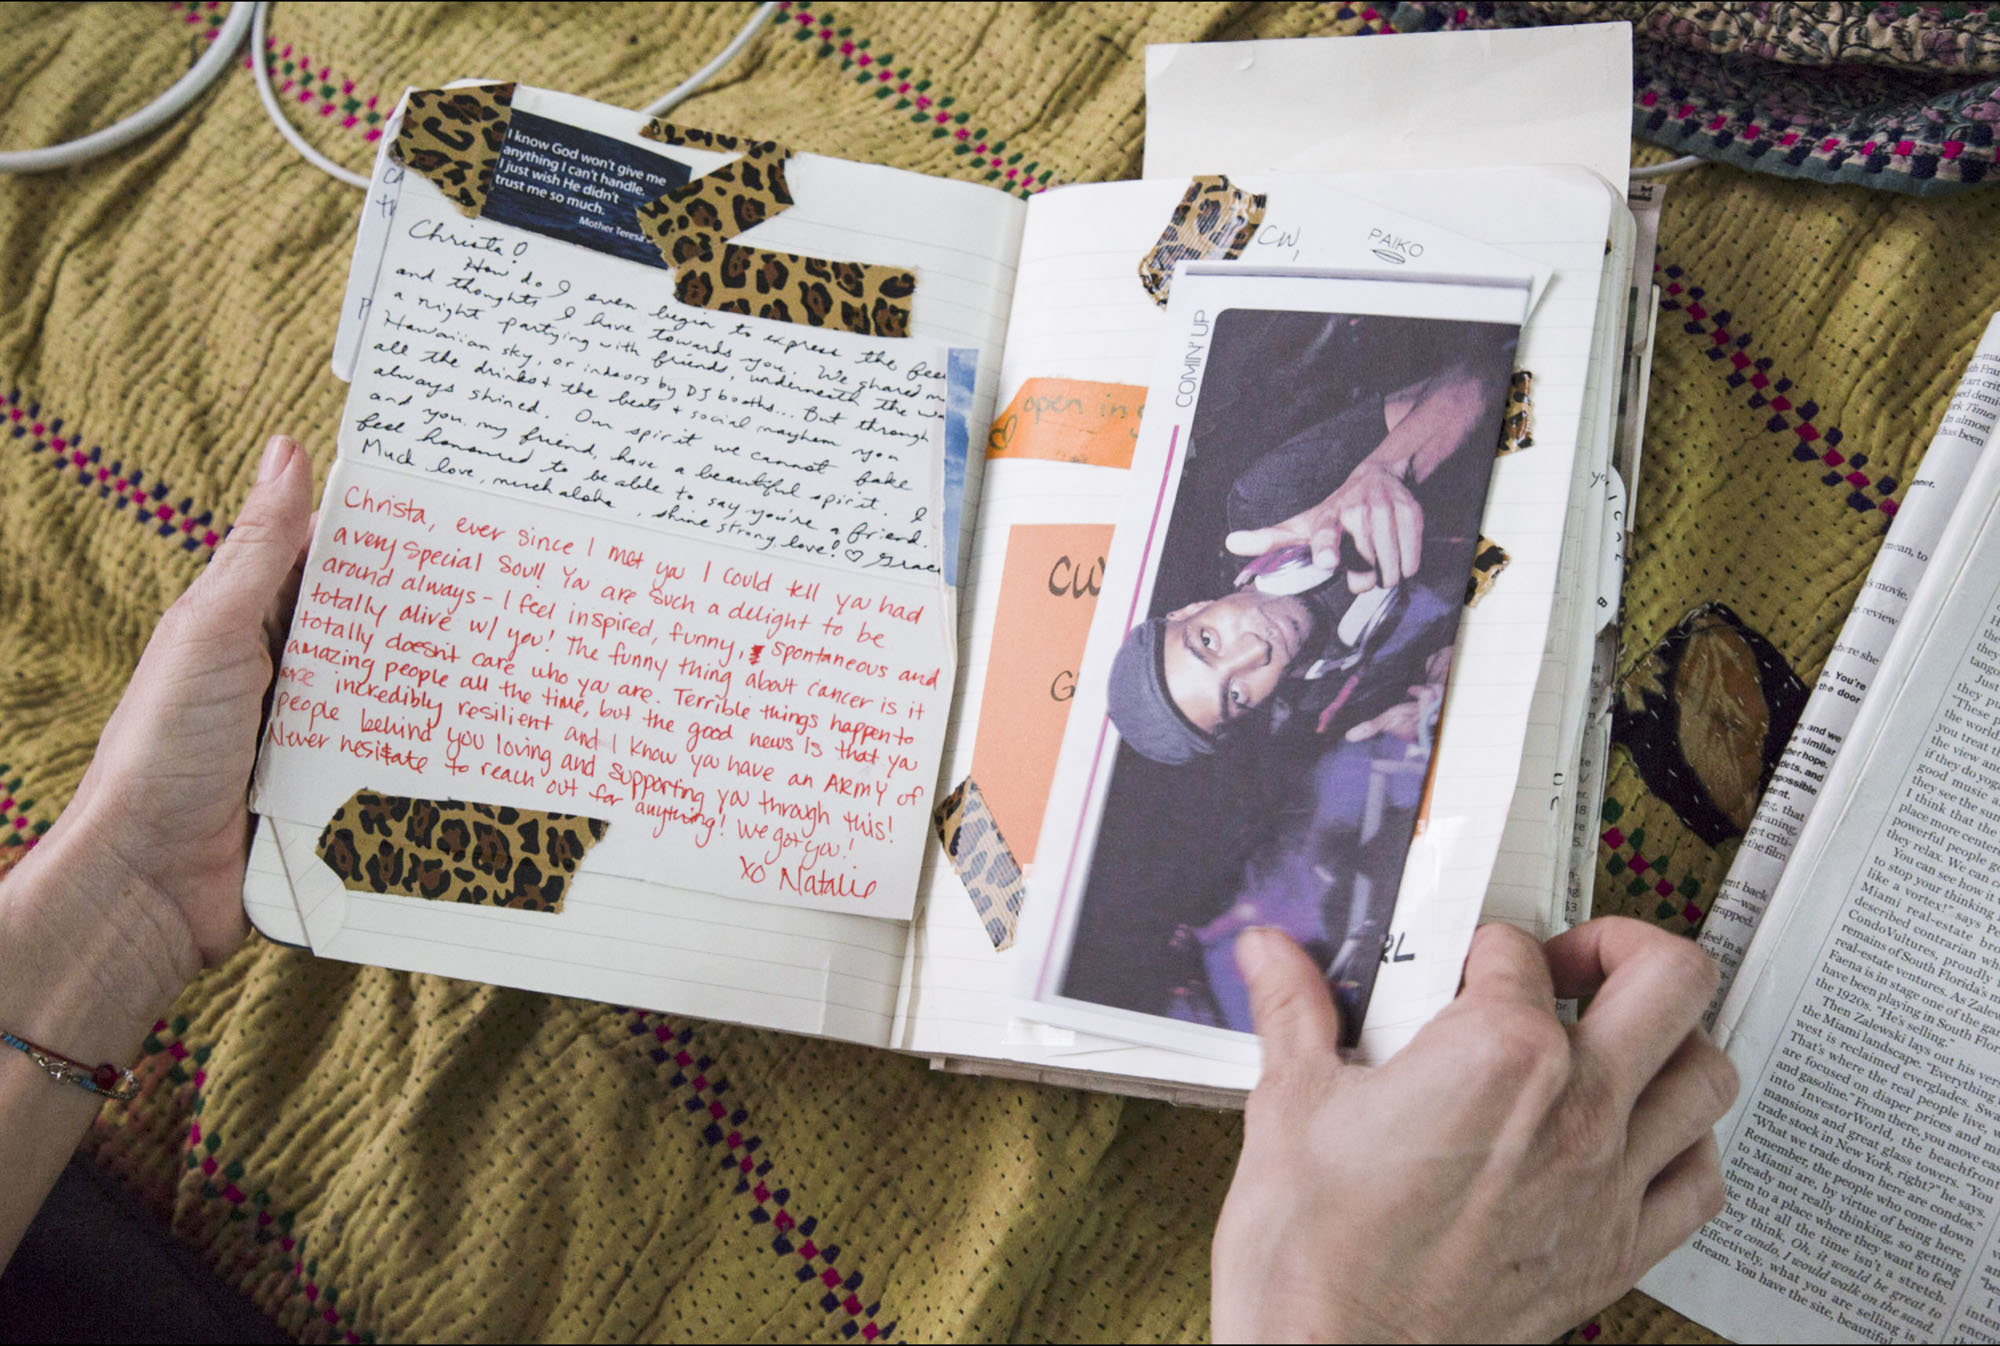 A page from Wittmierʻs journal in her Honolulu, HI home. The beloved nightlife staple received an immense amount of support from her community throughout her fight with cancer. The composition book was filled with notes, photographs, and clippings from her friends and family.